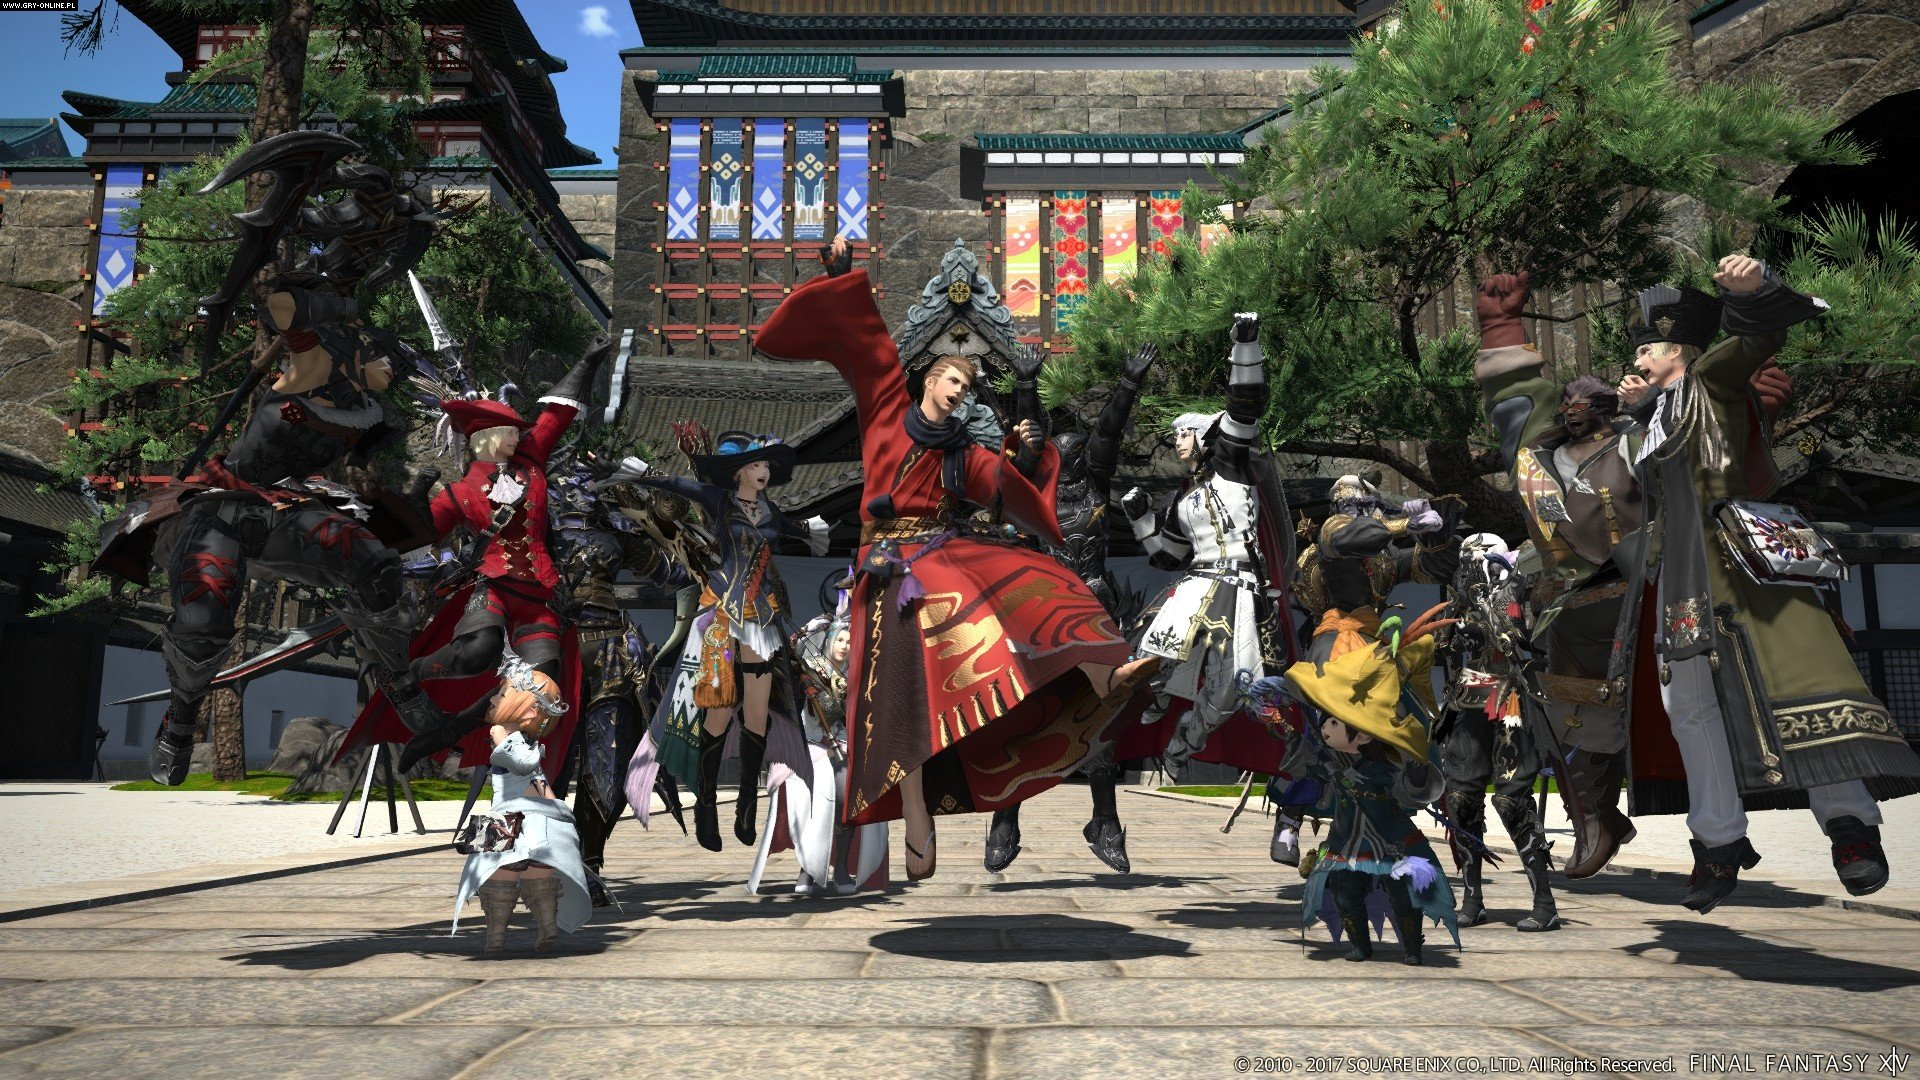 Final Fantasy XIV: Stormblood PS4, PC Gry Screen 153/179, Square-Enix / Eidos